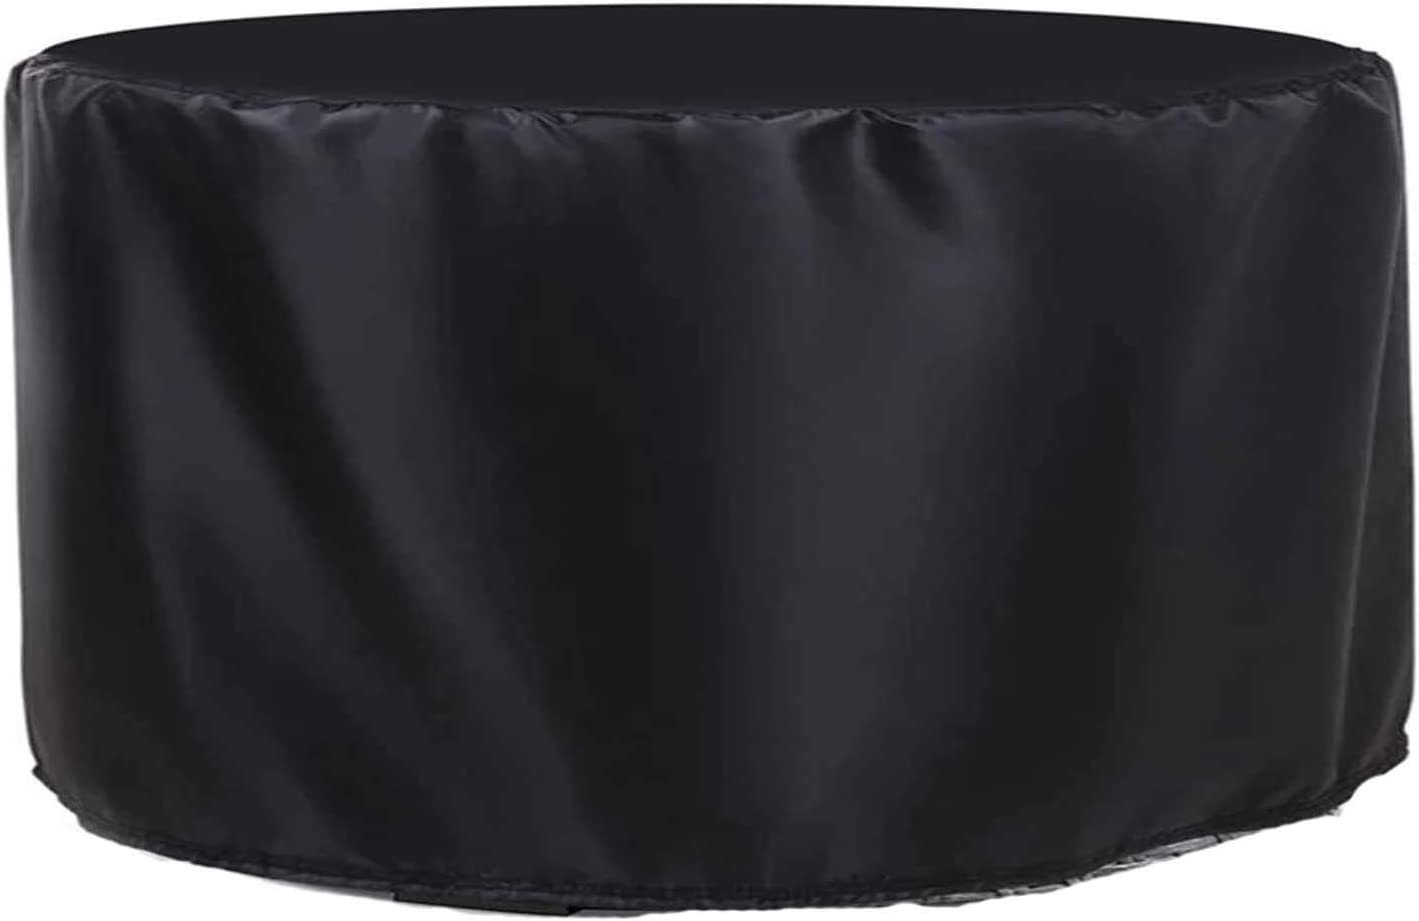 WZDD Protective Albuquerque Mall Cover for Round 94x23 Outd Set Table inch Special price for a limited time